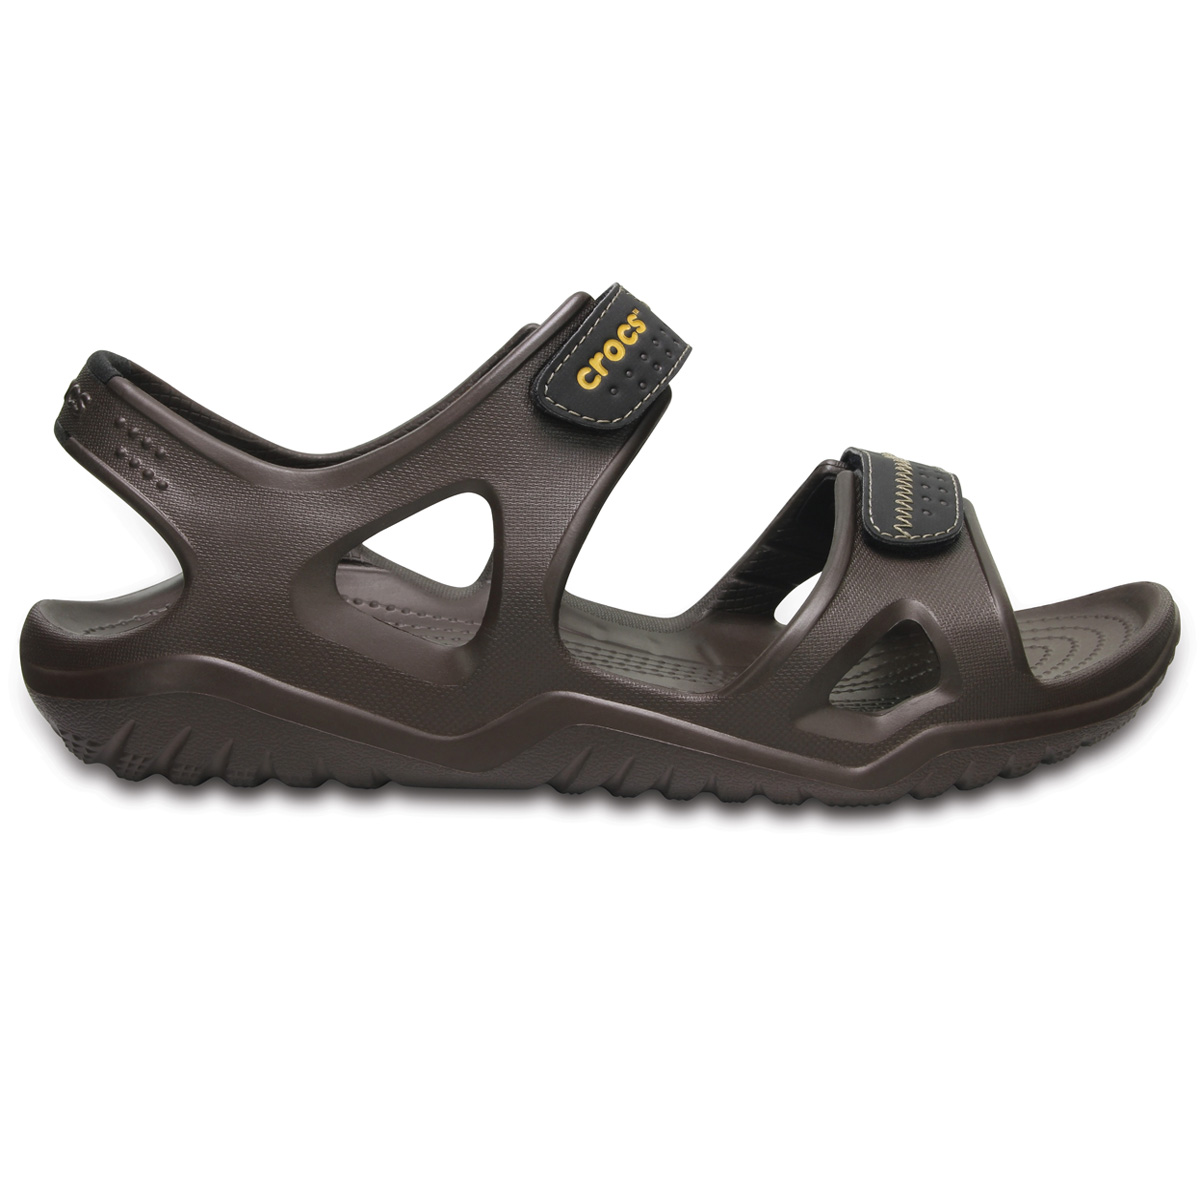 Swiftwater River Sandal M-Espresso/Siyah